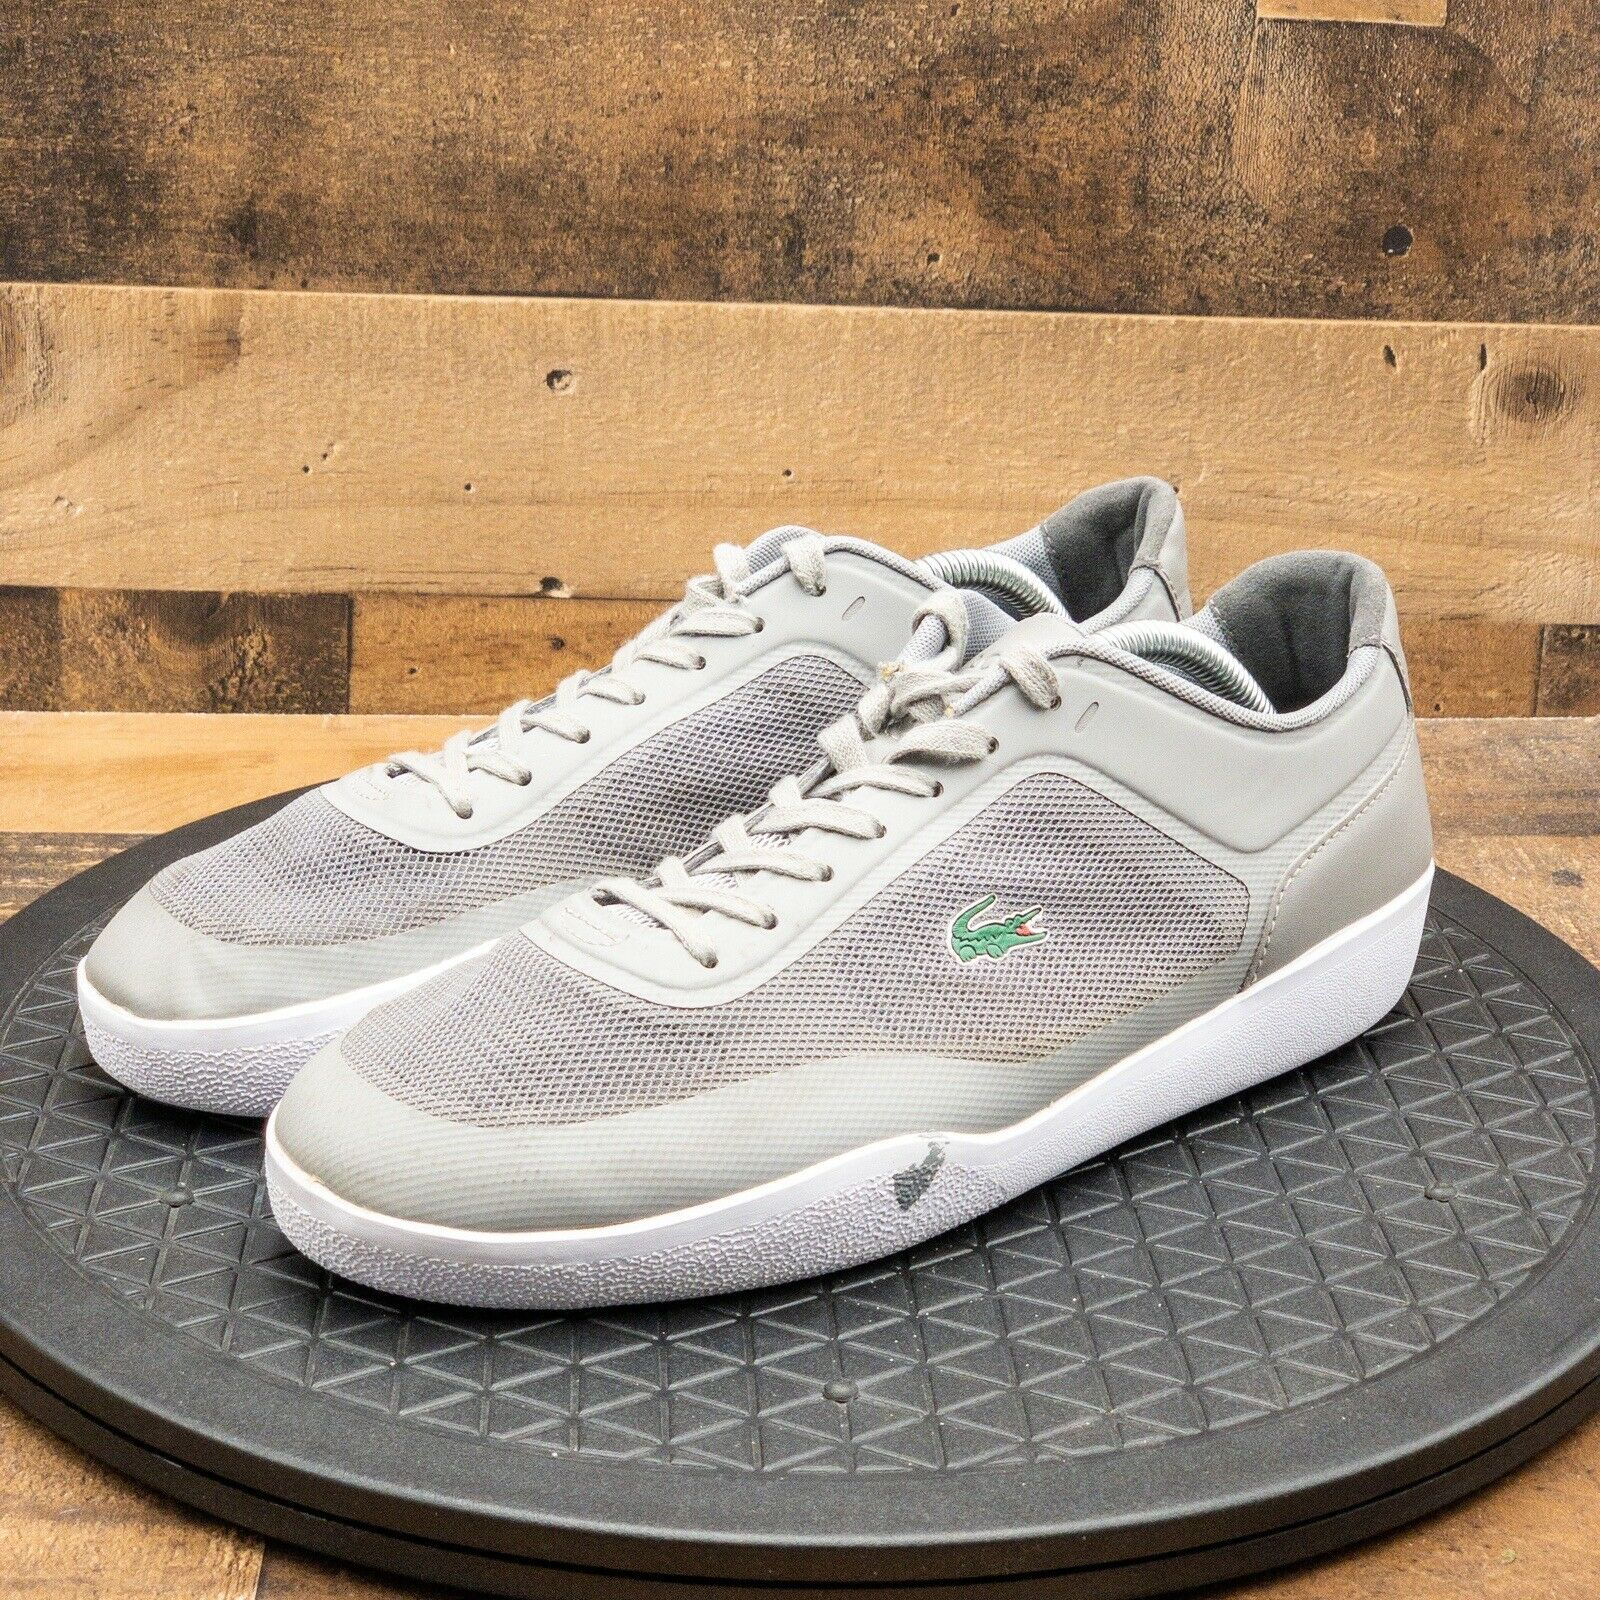 Lacoste Mens Shoes Athletic Casual Gray Sneakers Lace Up Low Walking Gray Sz 10